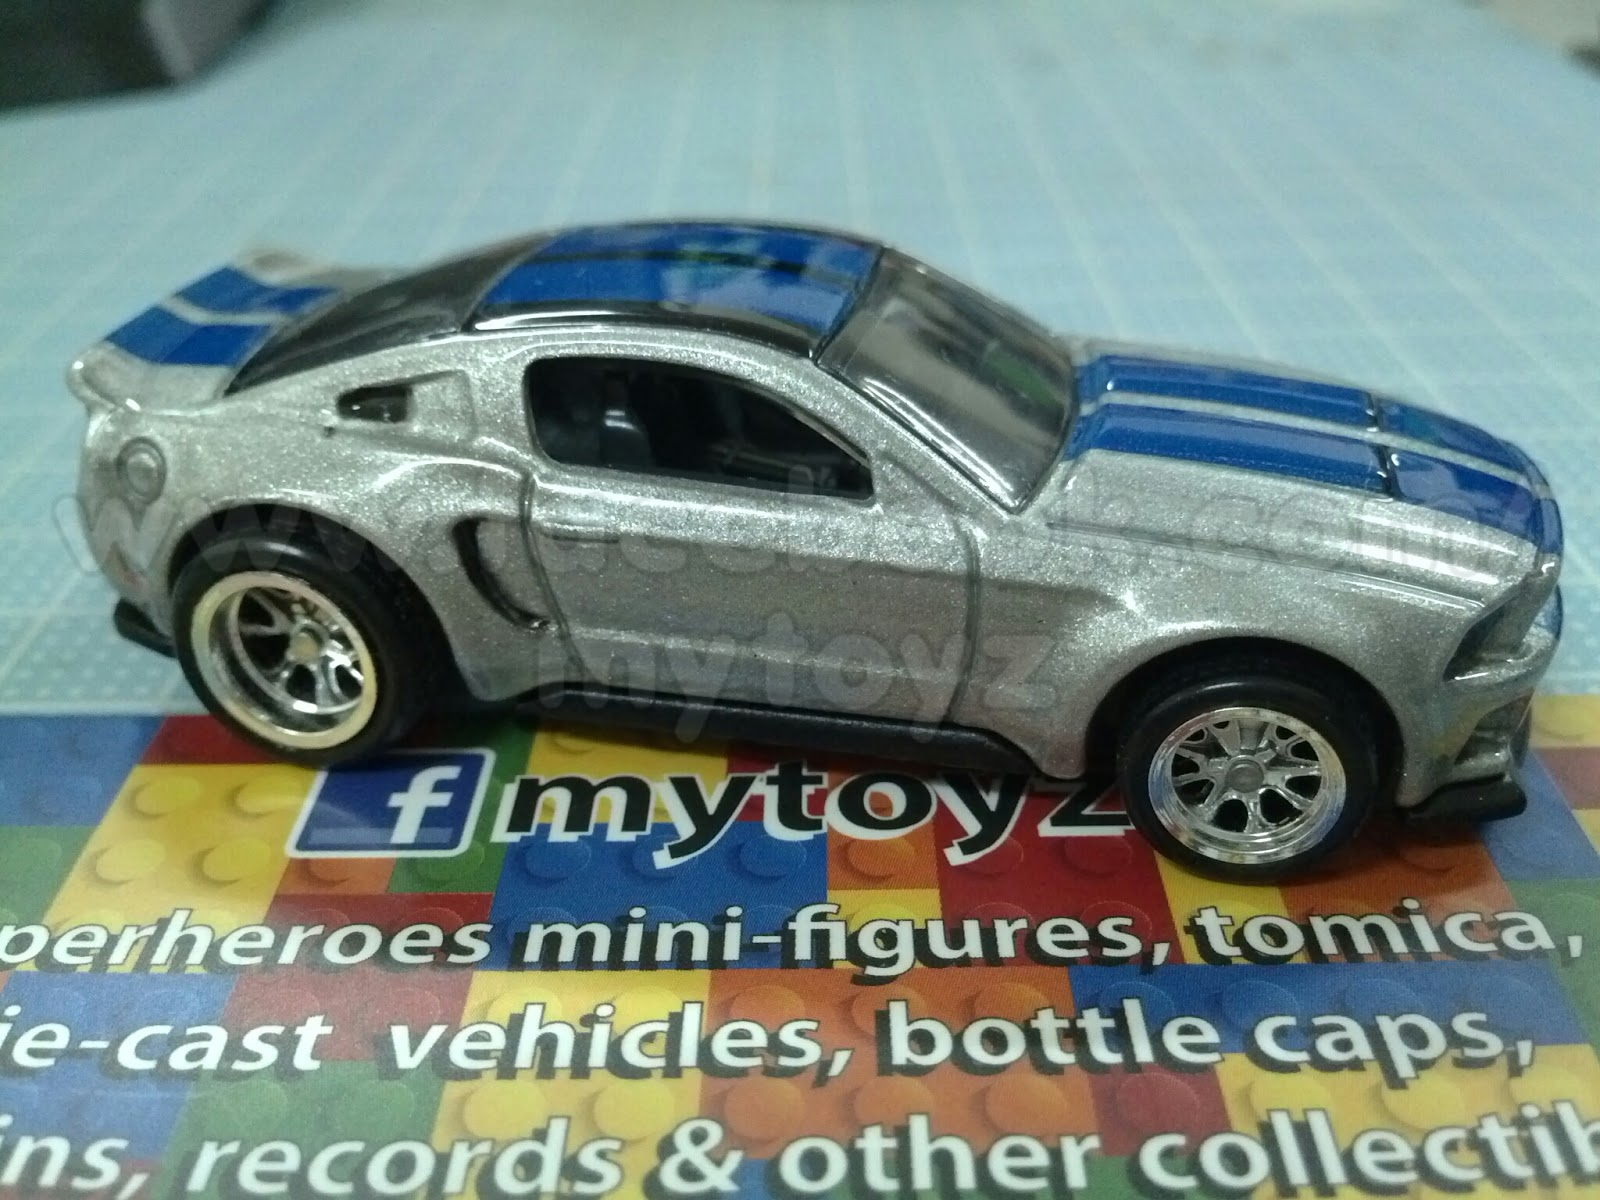 Mytoyzmalaysia Online Hobbies Toys And Collectibles Store Hot Wheels Need For Speed Custom Mustang